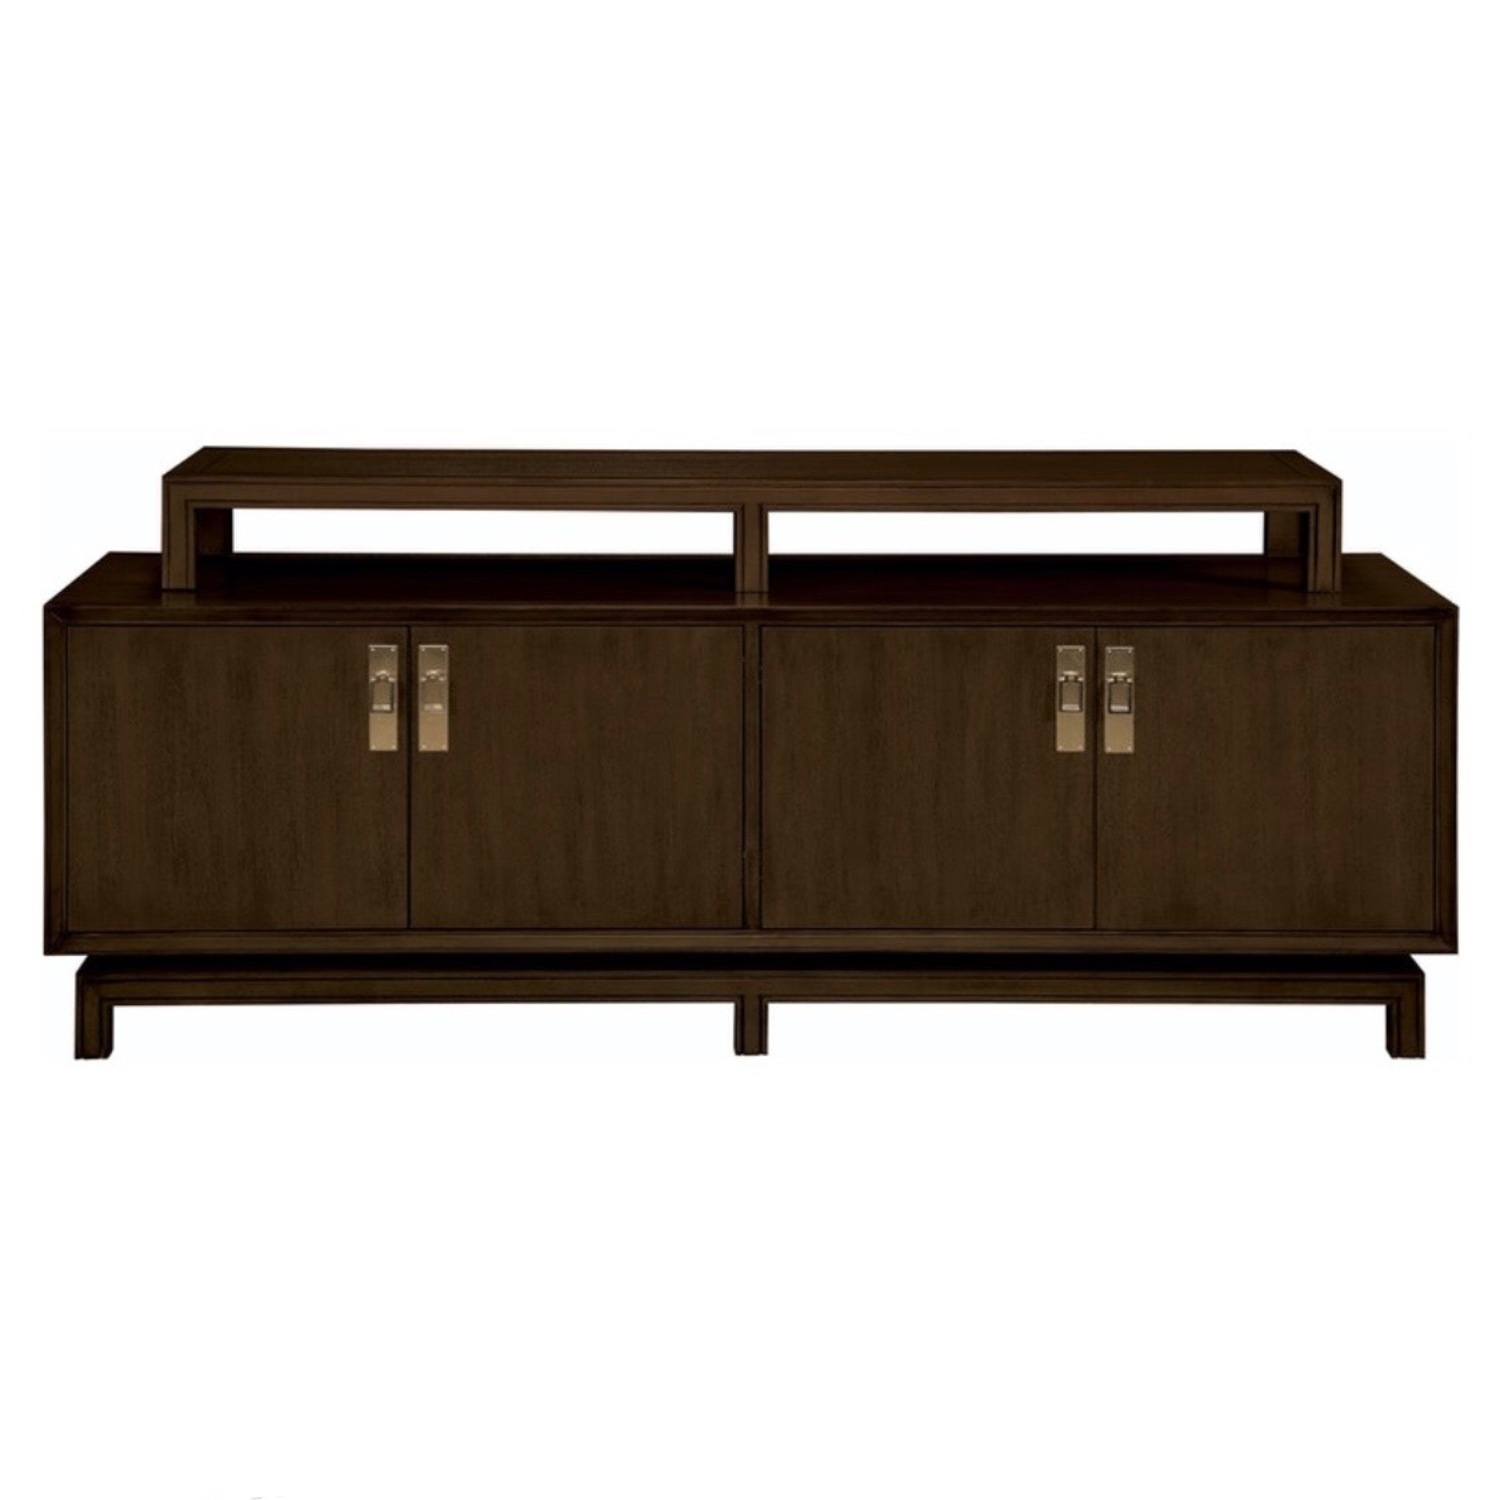 Contemporary Asian Inspired Tv Console - image-1